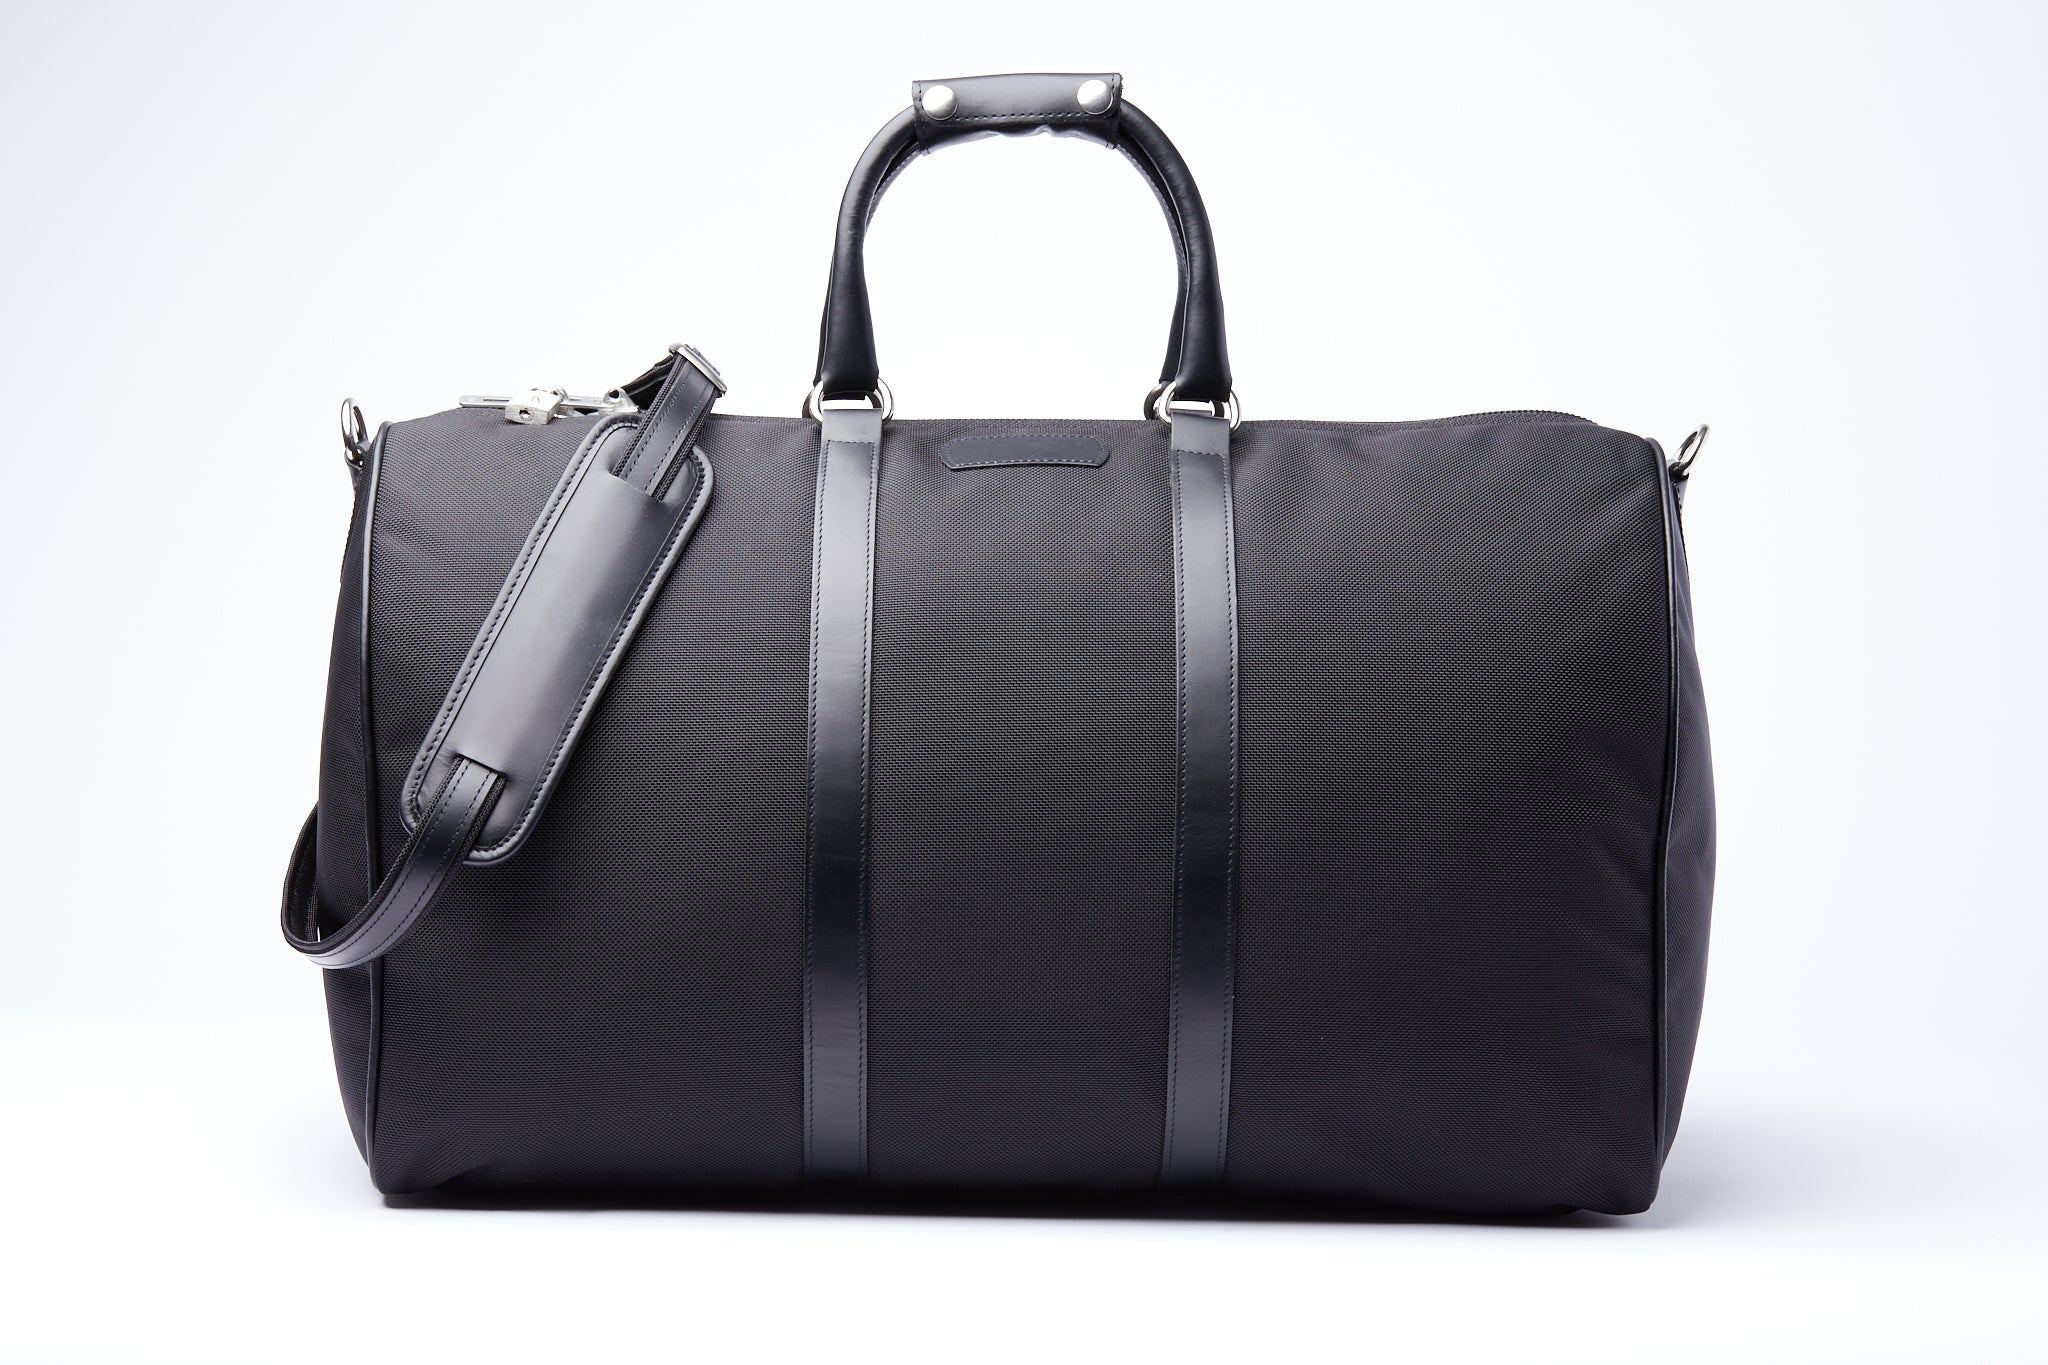 Black nylon and leather duffle bag